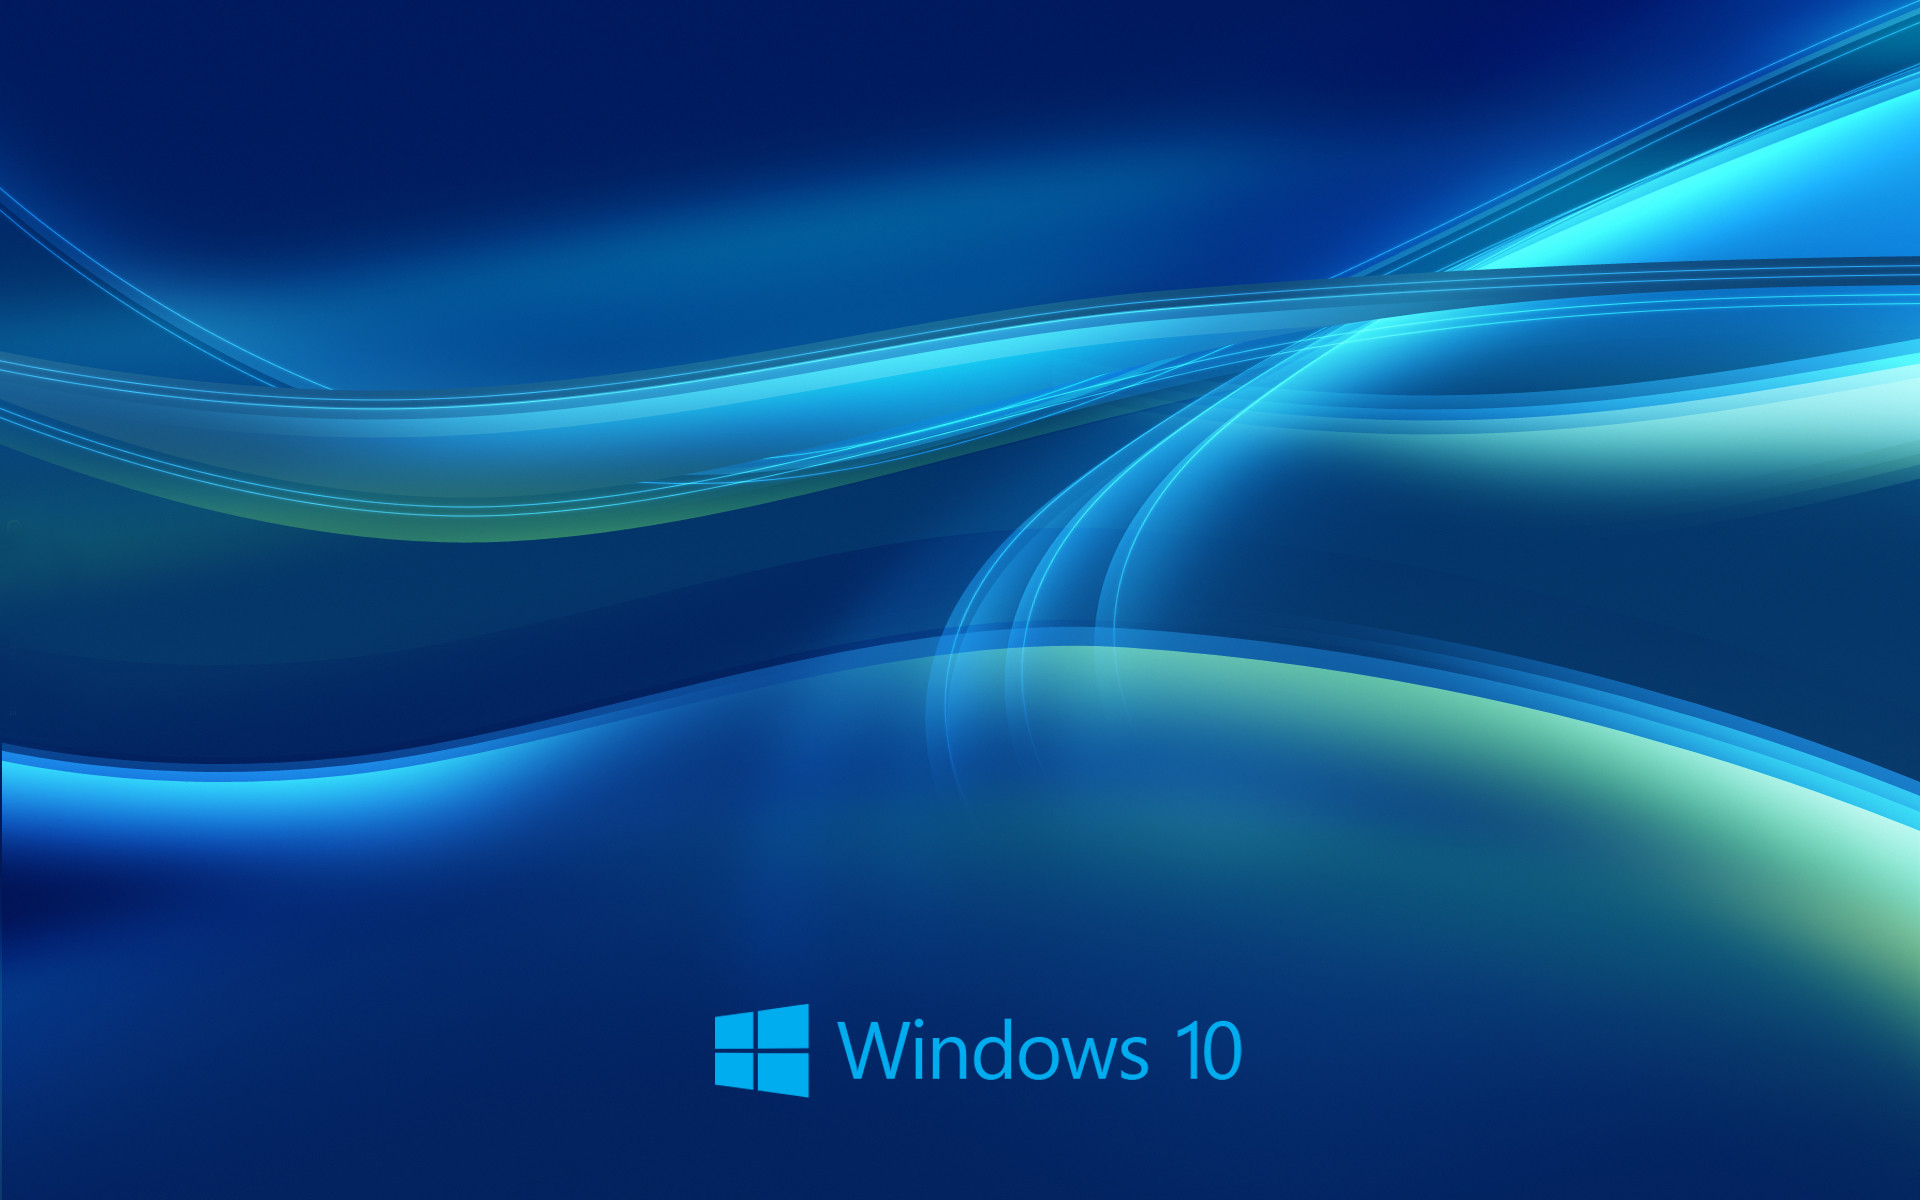 1920x1200 0 Windows 10 Wallpaper Theme 3K Windows 10 Wallpapers, Pictures, Images